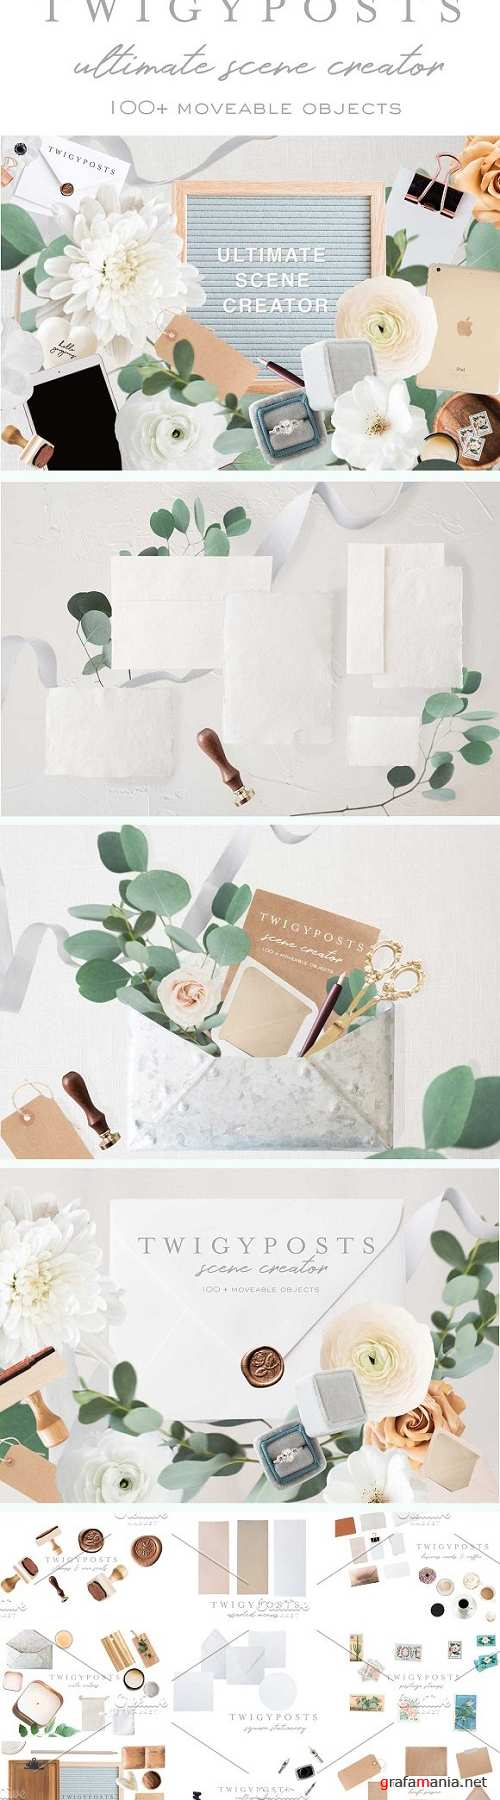 Movable Scenes | Stationery Mockups - 2263660